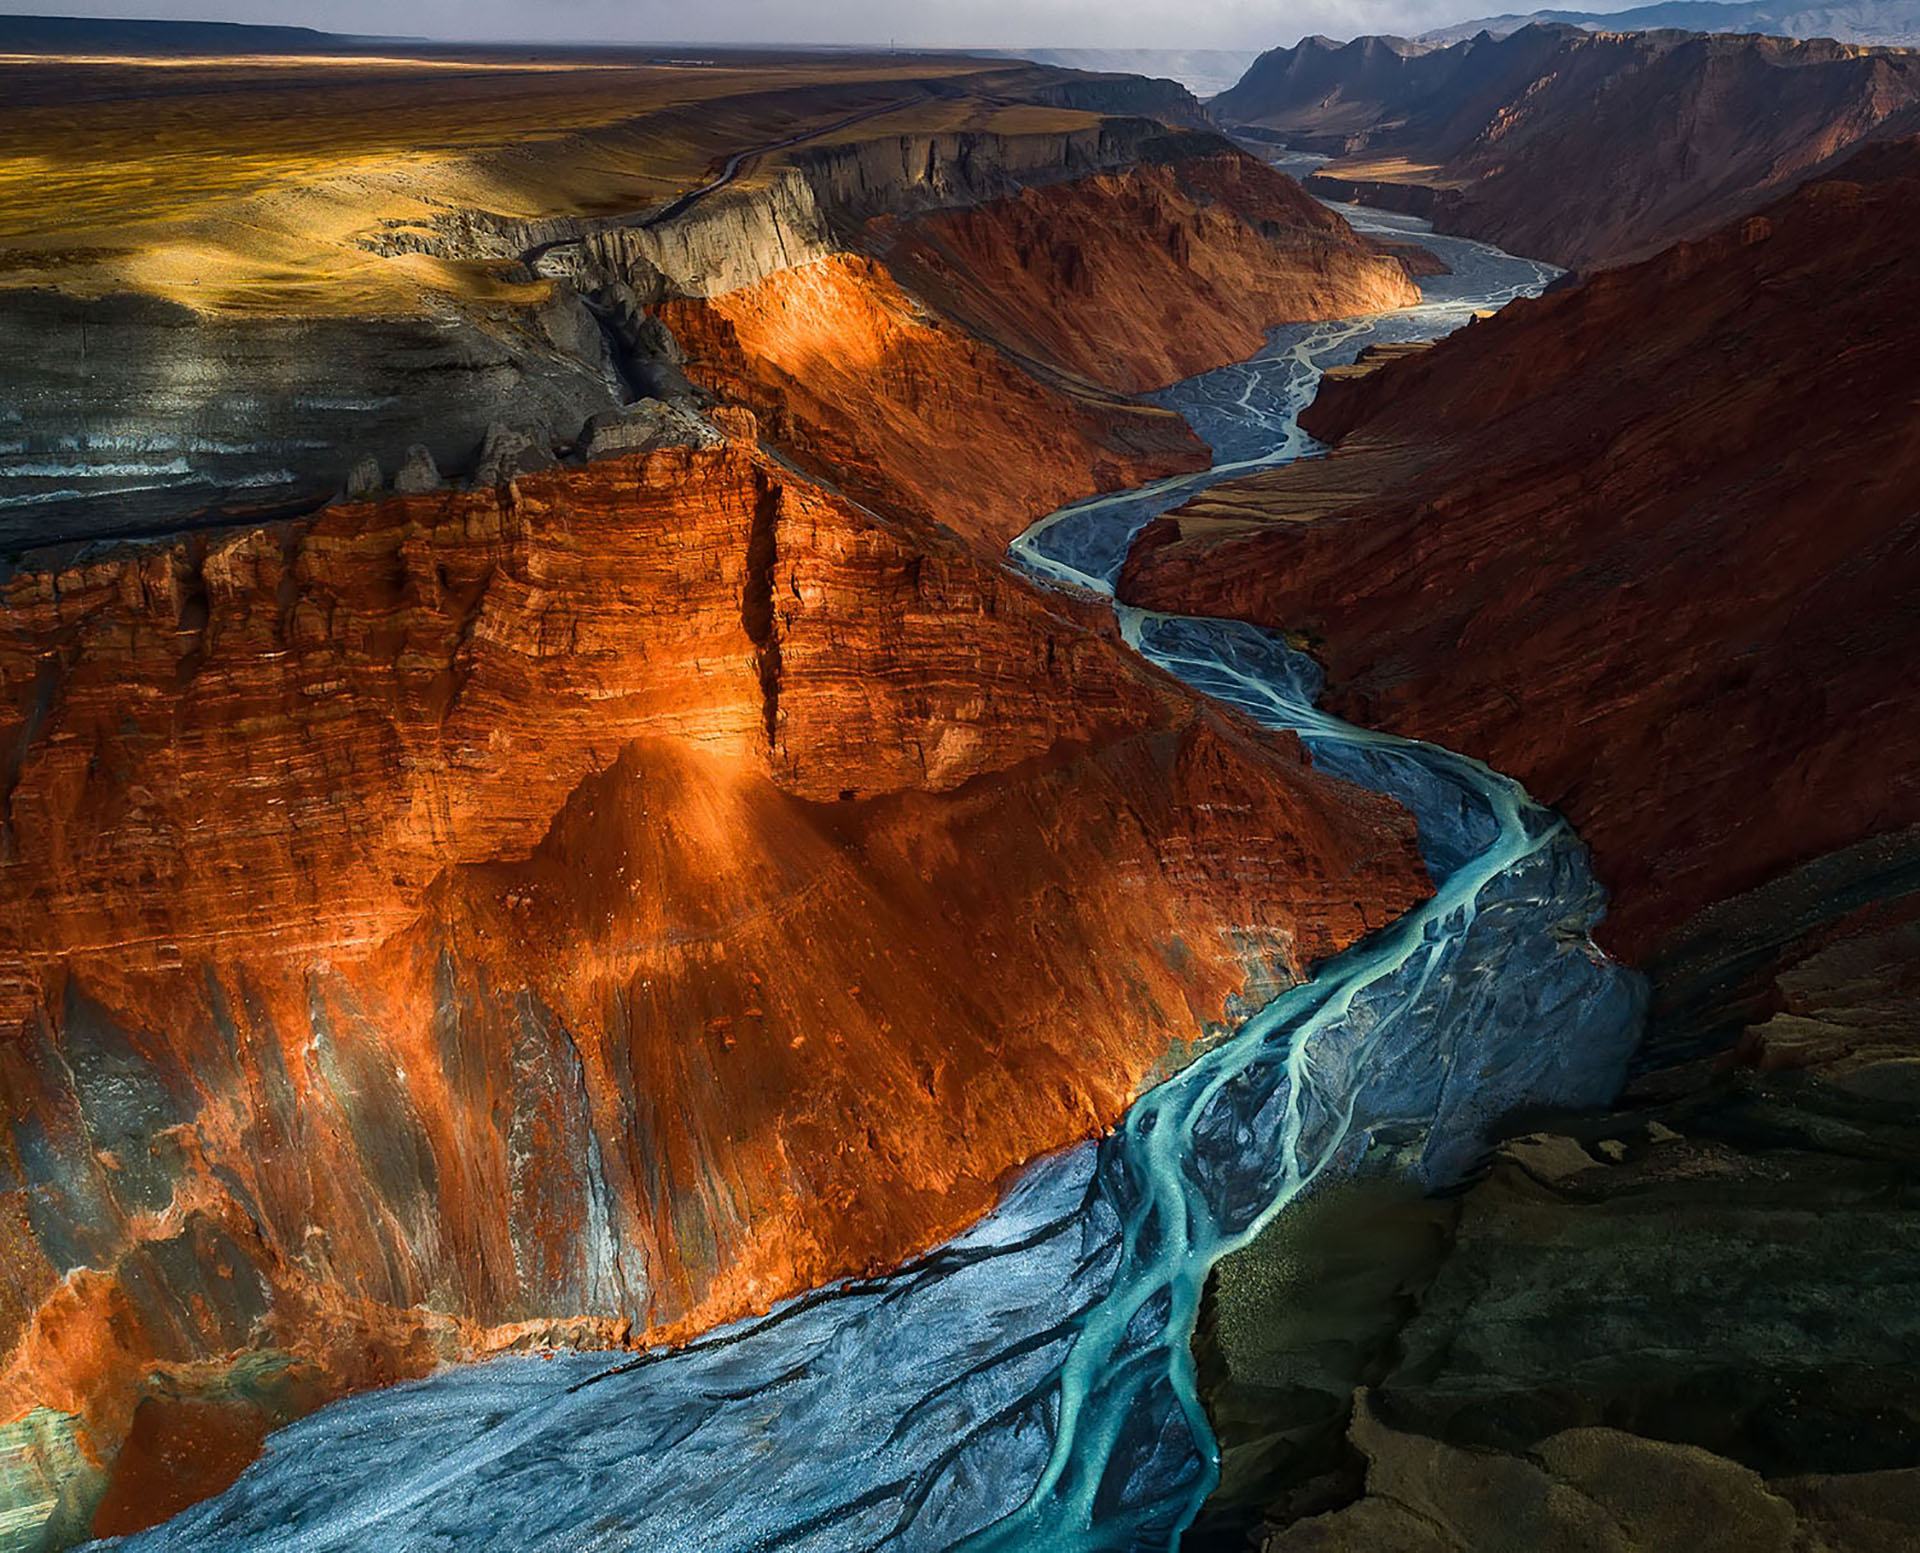 DUSHANZI GRAND CANYON. Different types of metallic minerals make the canyon so splendid.